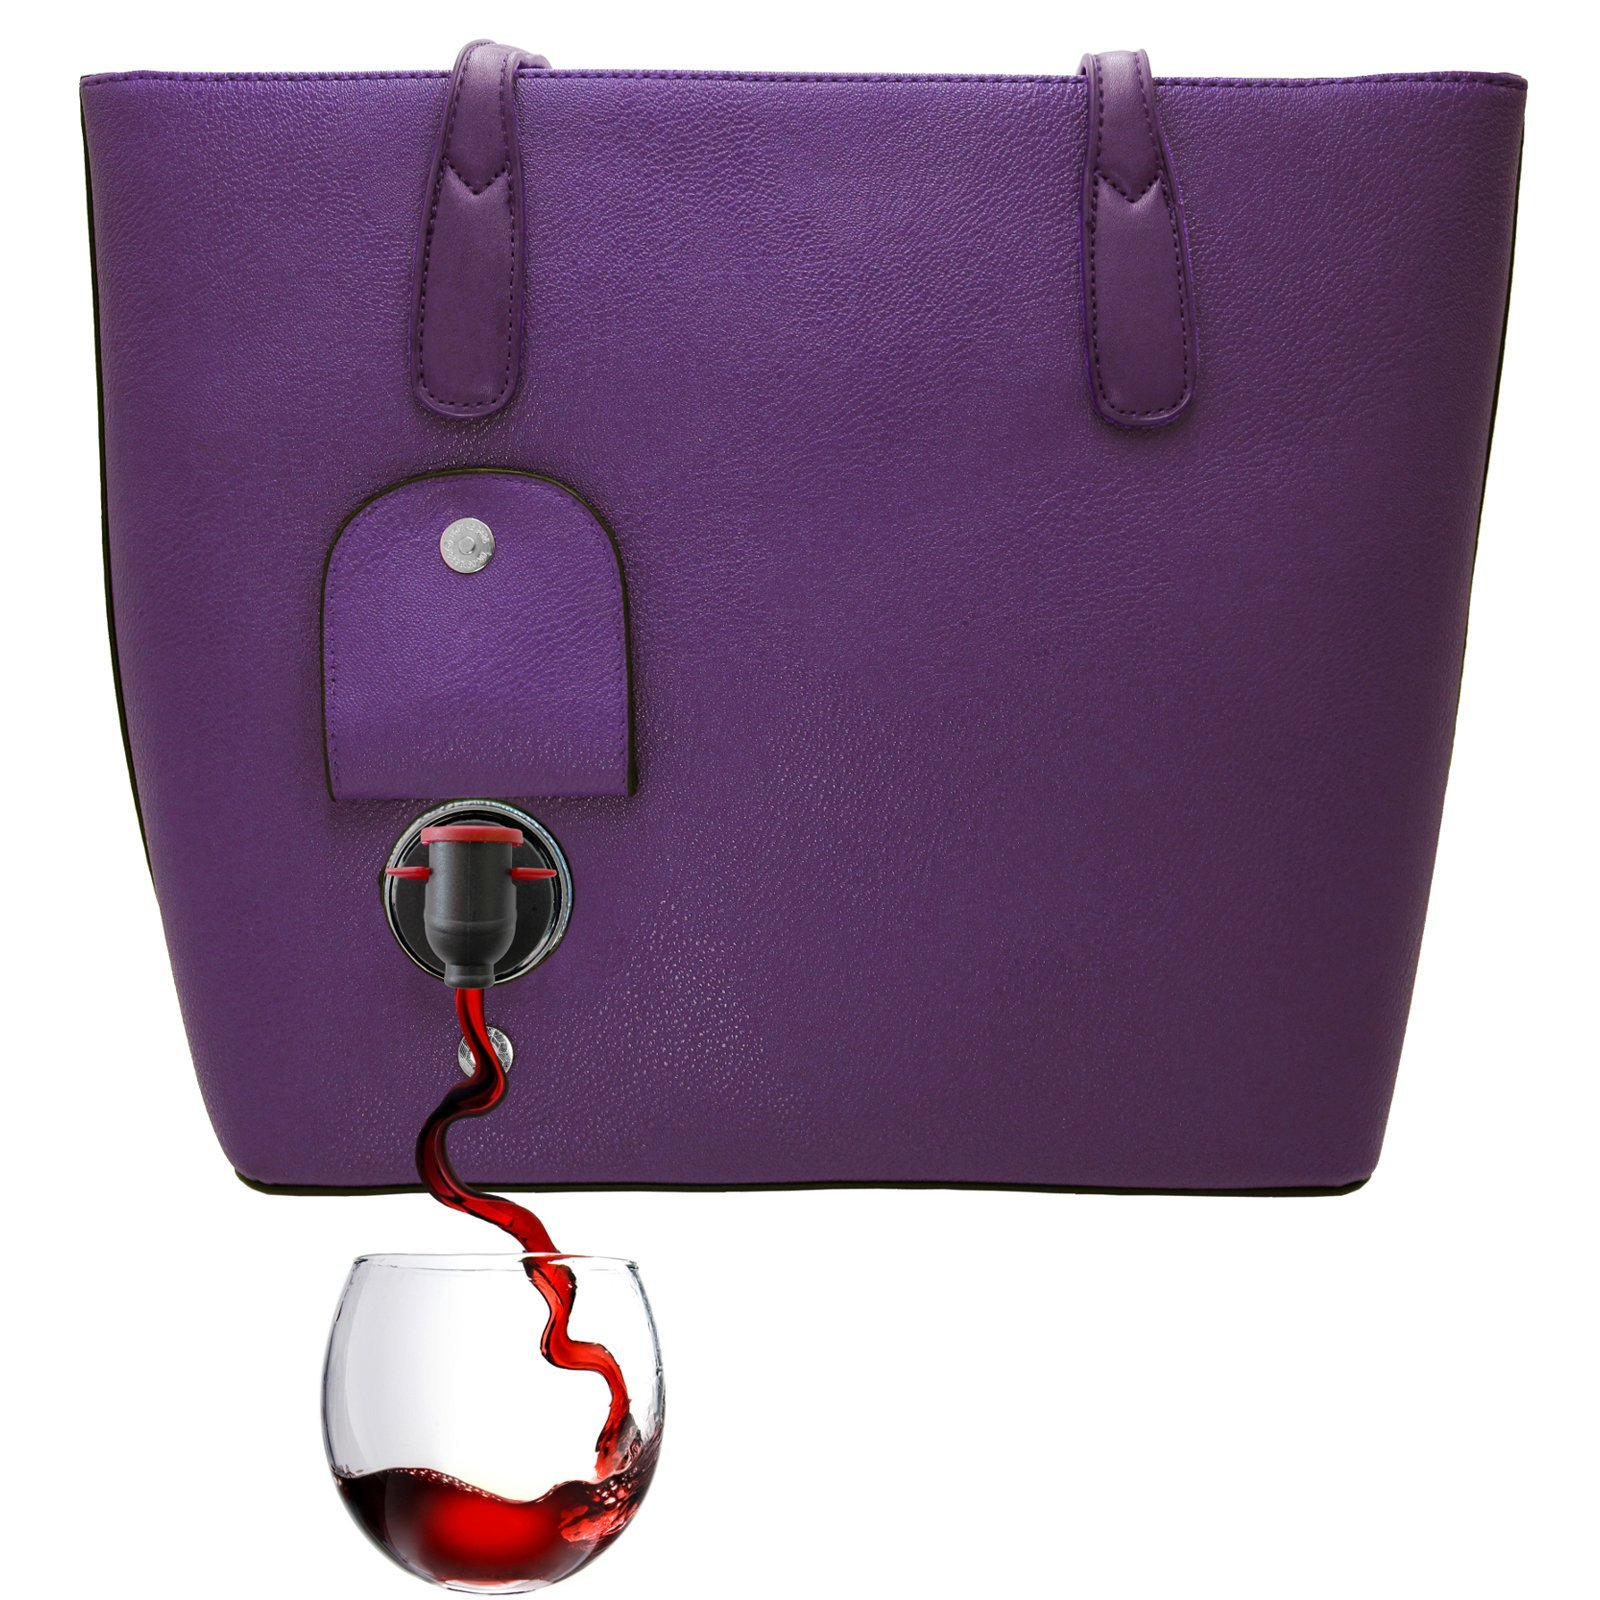 PortoVino Classic Wine Purse (Aubergine) - Fashionable purse with Hidden, Insulated Compartment, Holds 2 bottles of Wine!